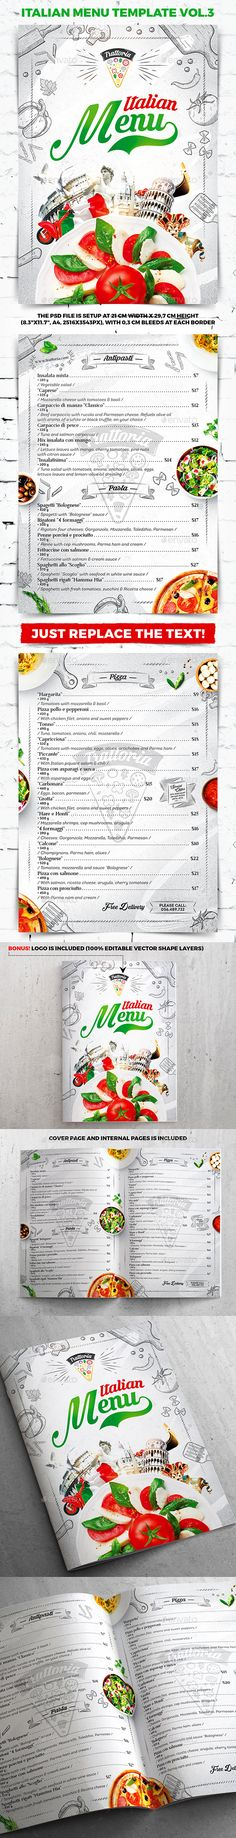 Italian Menu Template vol.3